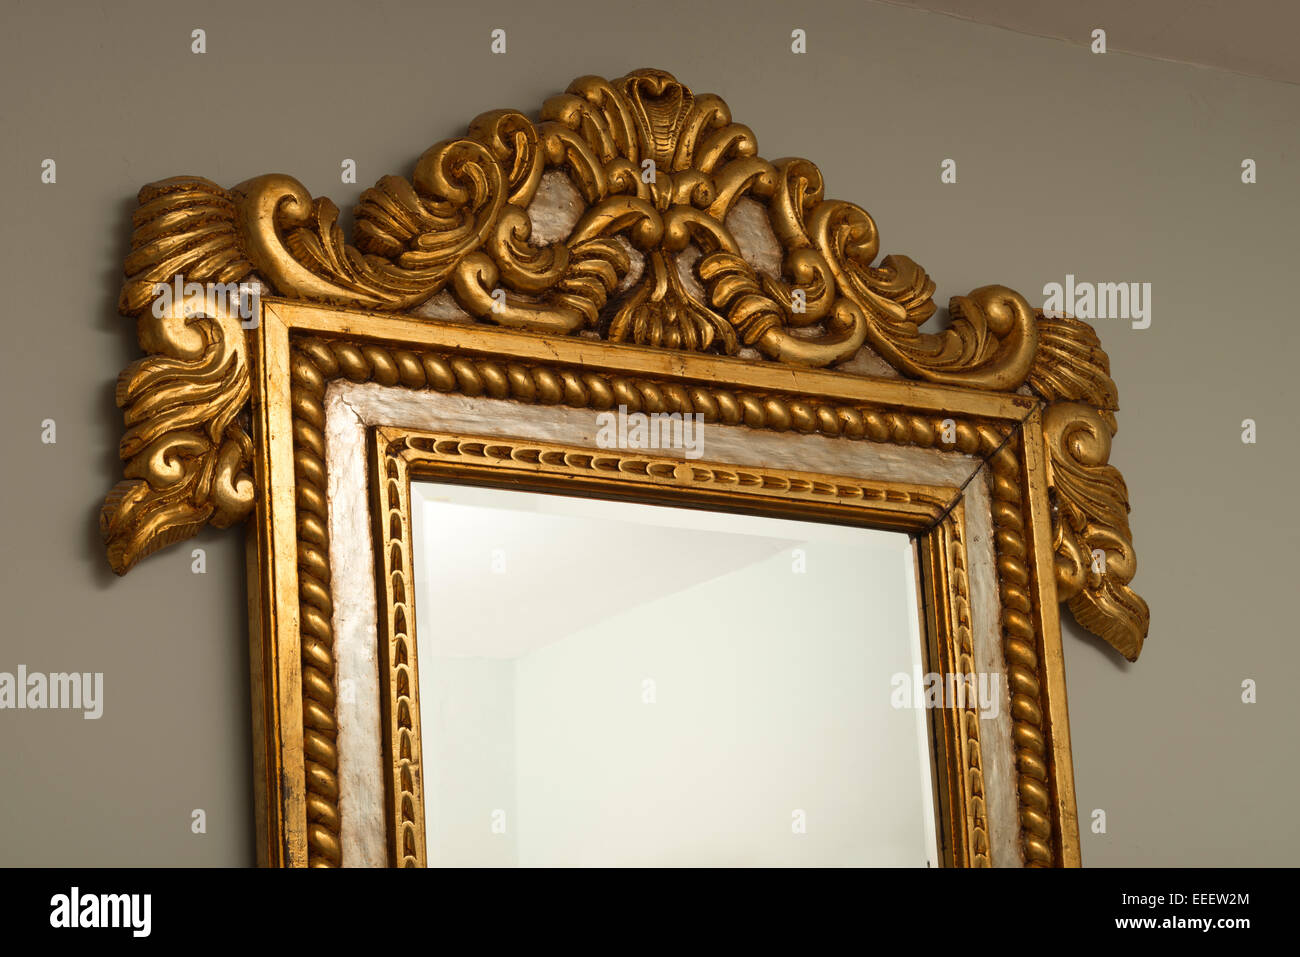 Silver Mirror Wall Photo Frame: Gilded Mahogany Wall Mirror Frame From Honduras. Silver